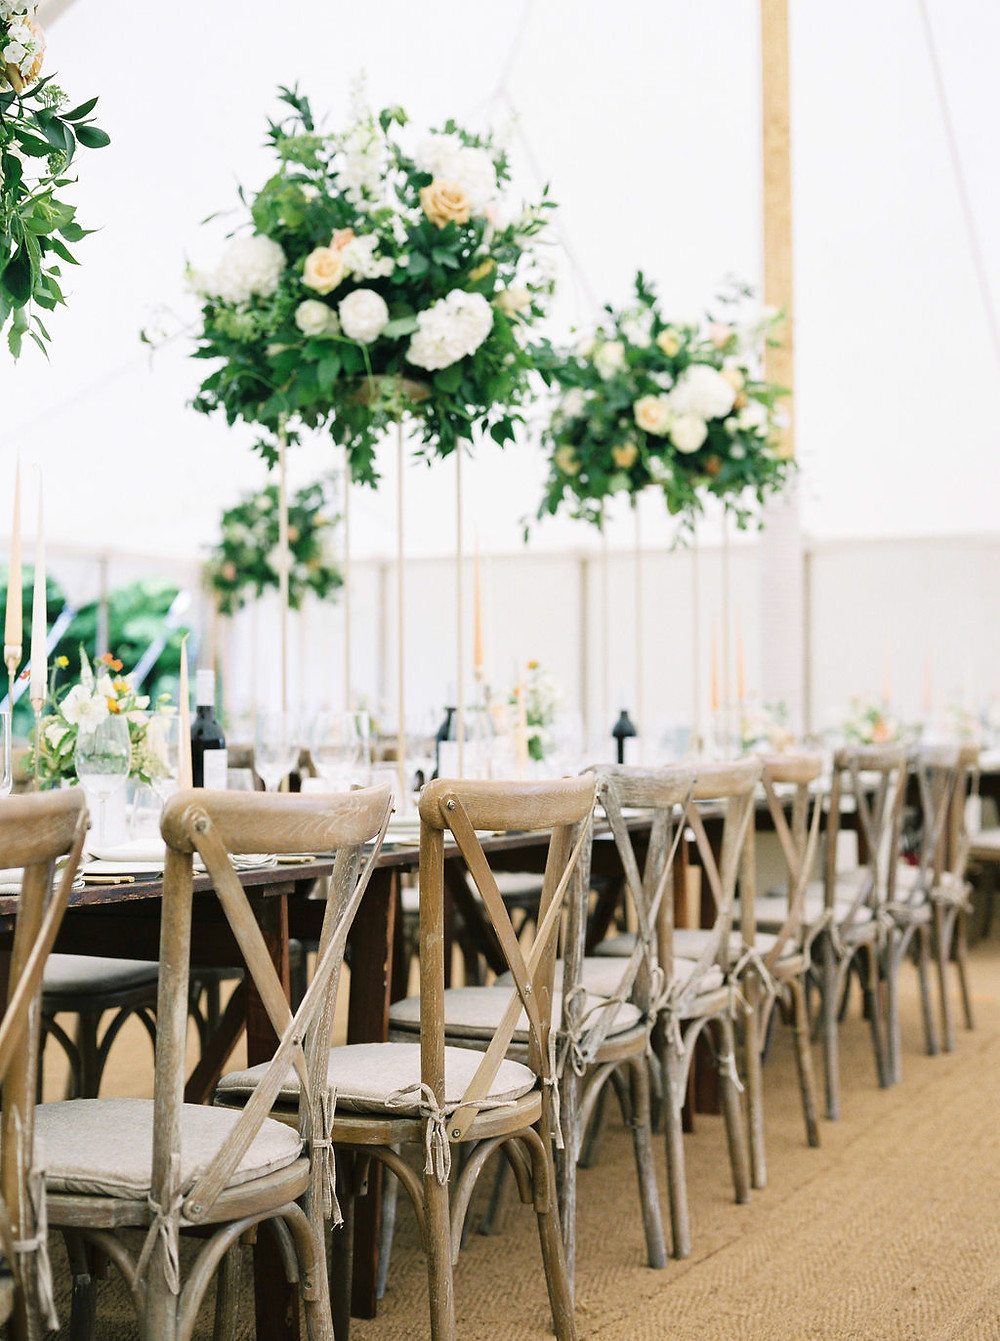 laid back luxury marquee wedding with cross back chairs and seat pad ties, styled by Jenna Hewitt, wedding planner